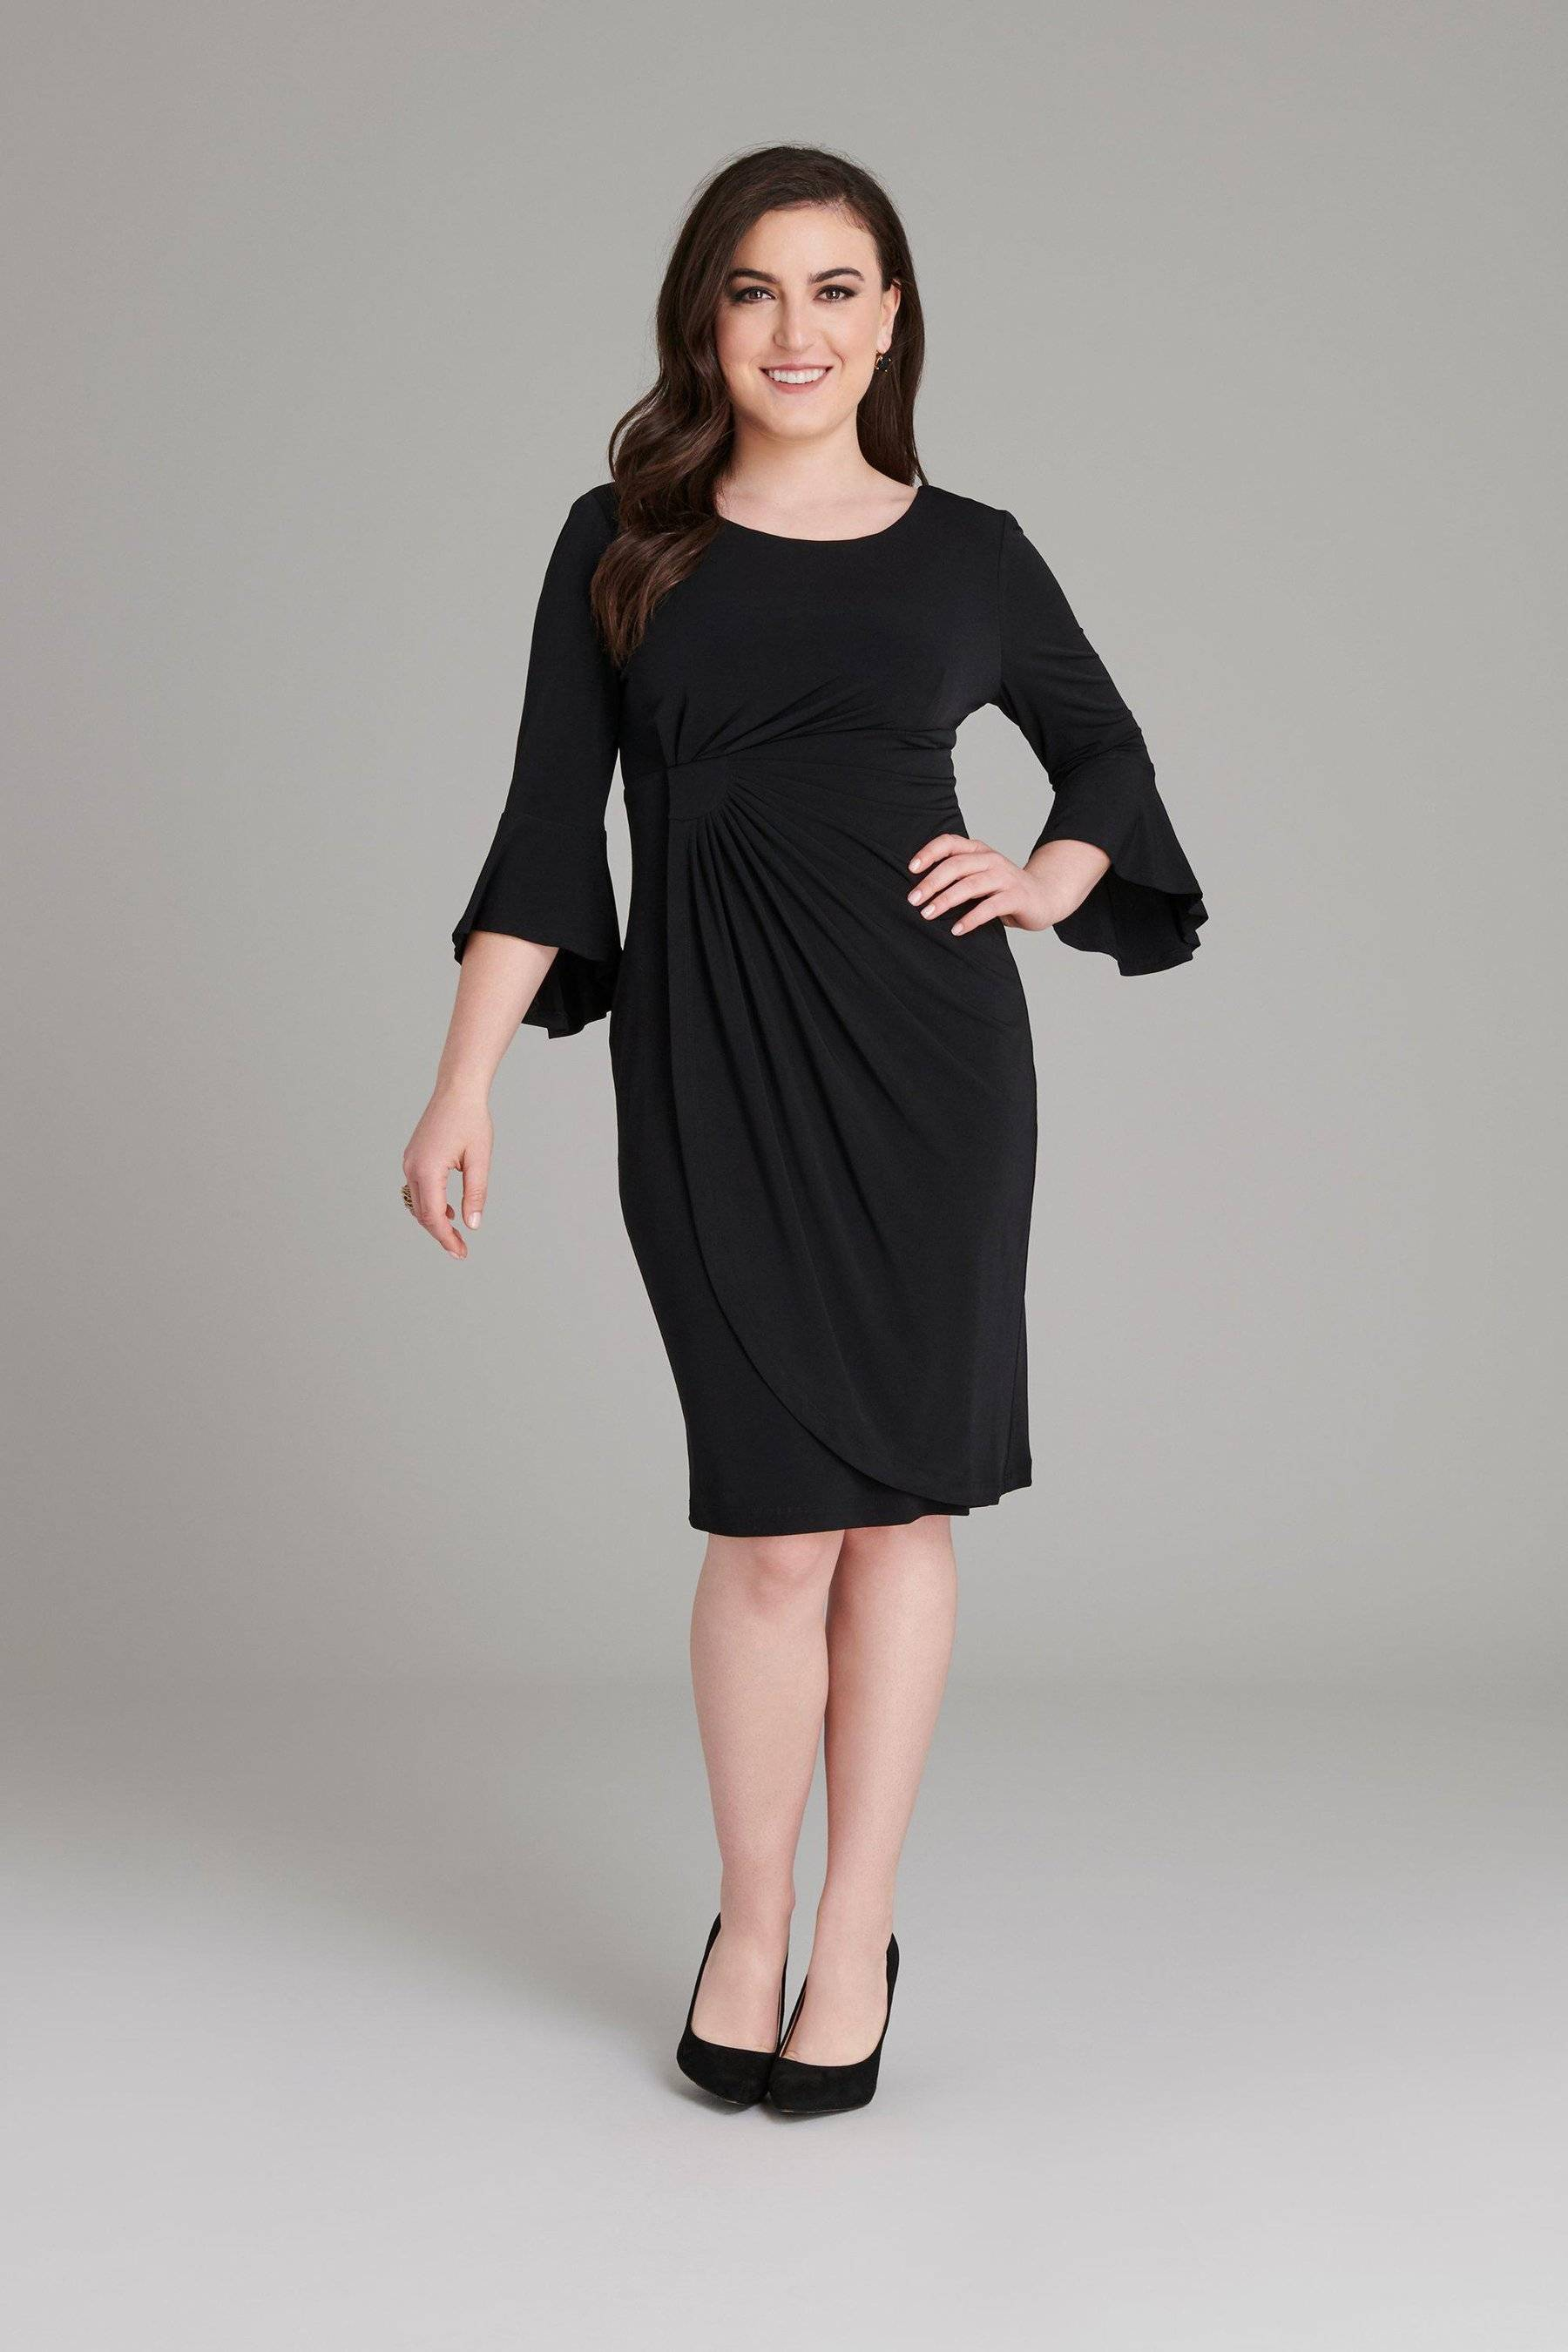 petite dark haired woman in black three-quarter sleeve faux wrap knee-length connected apparel dress with flounce sleeve